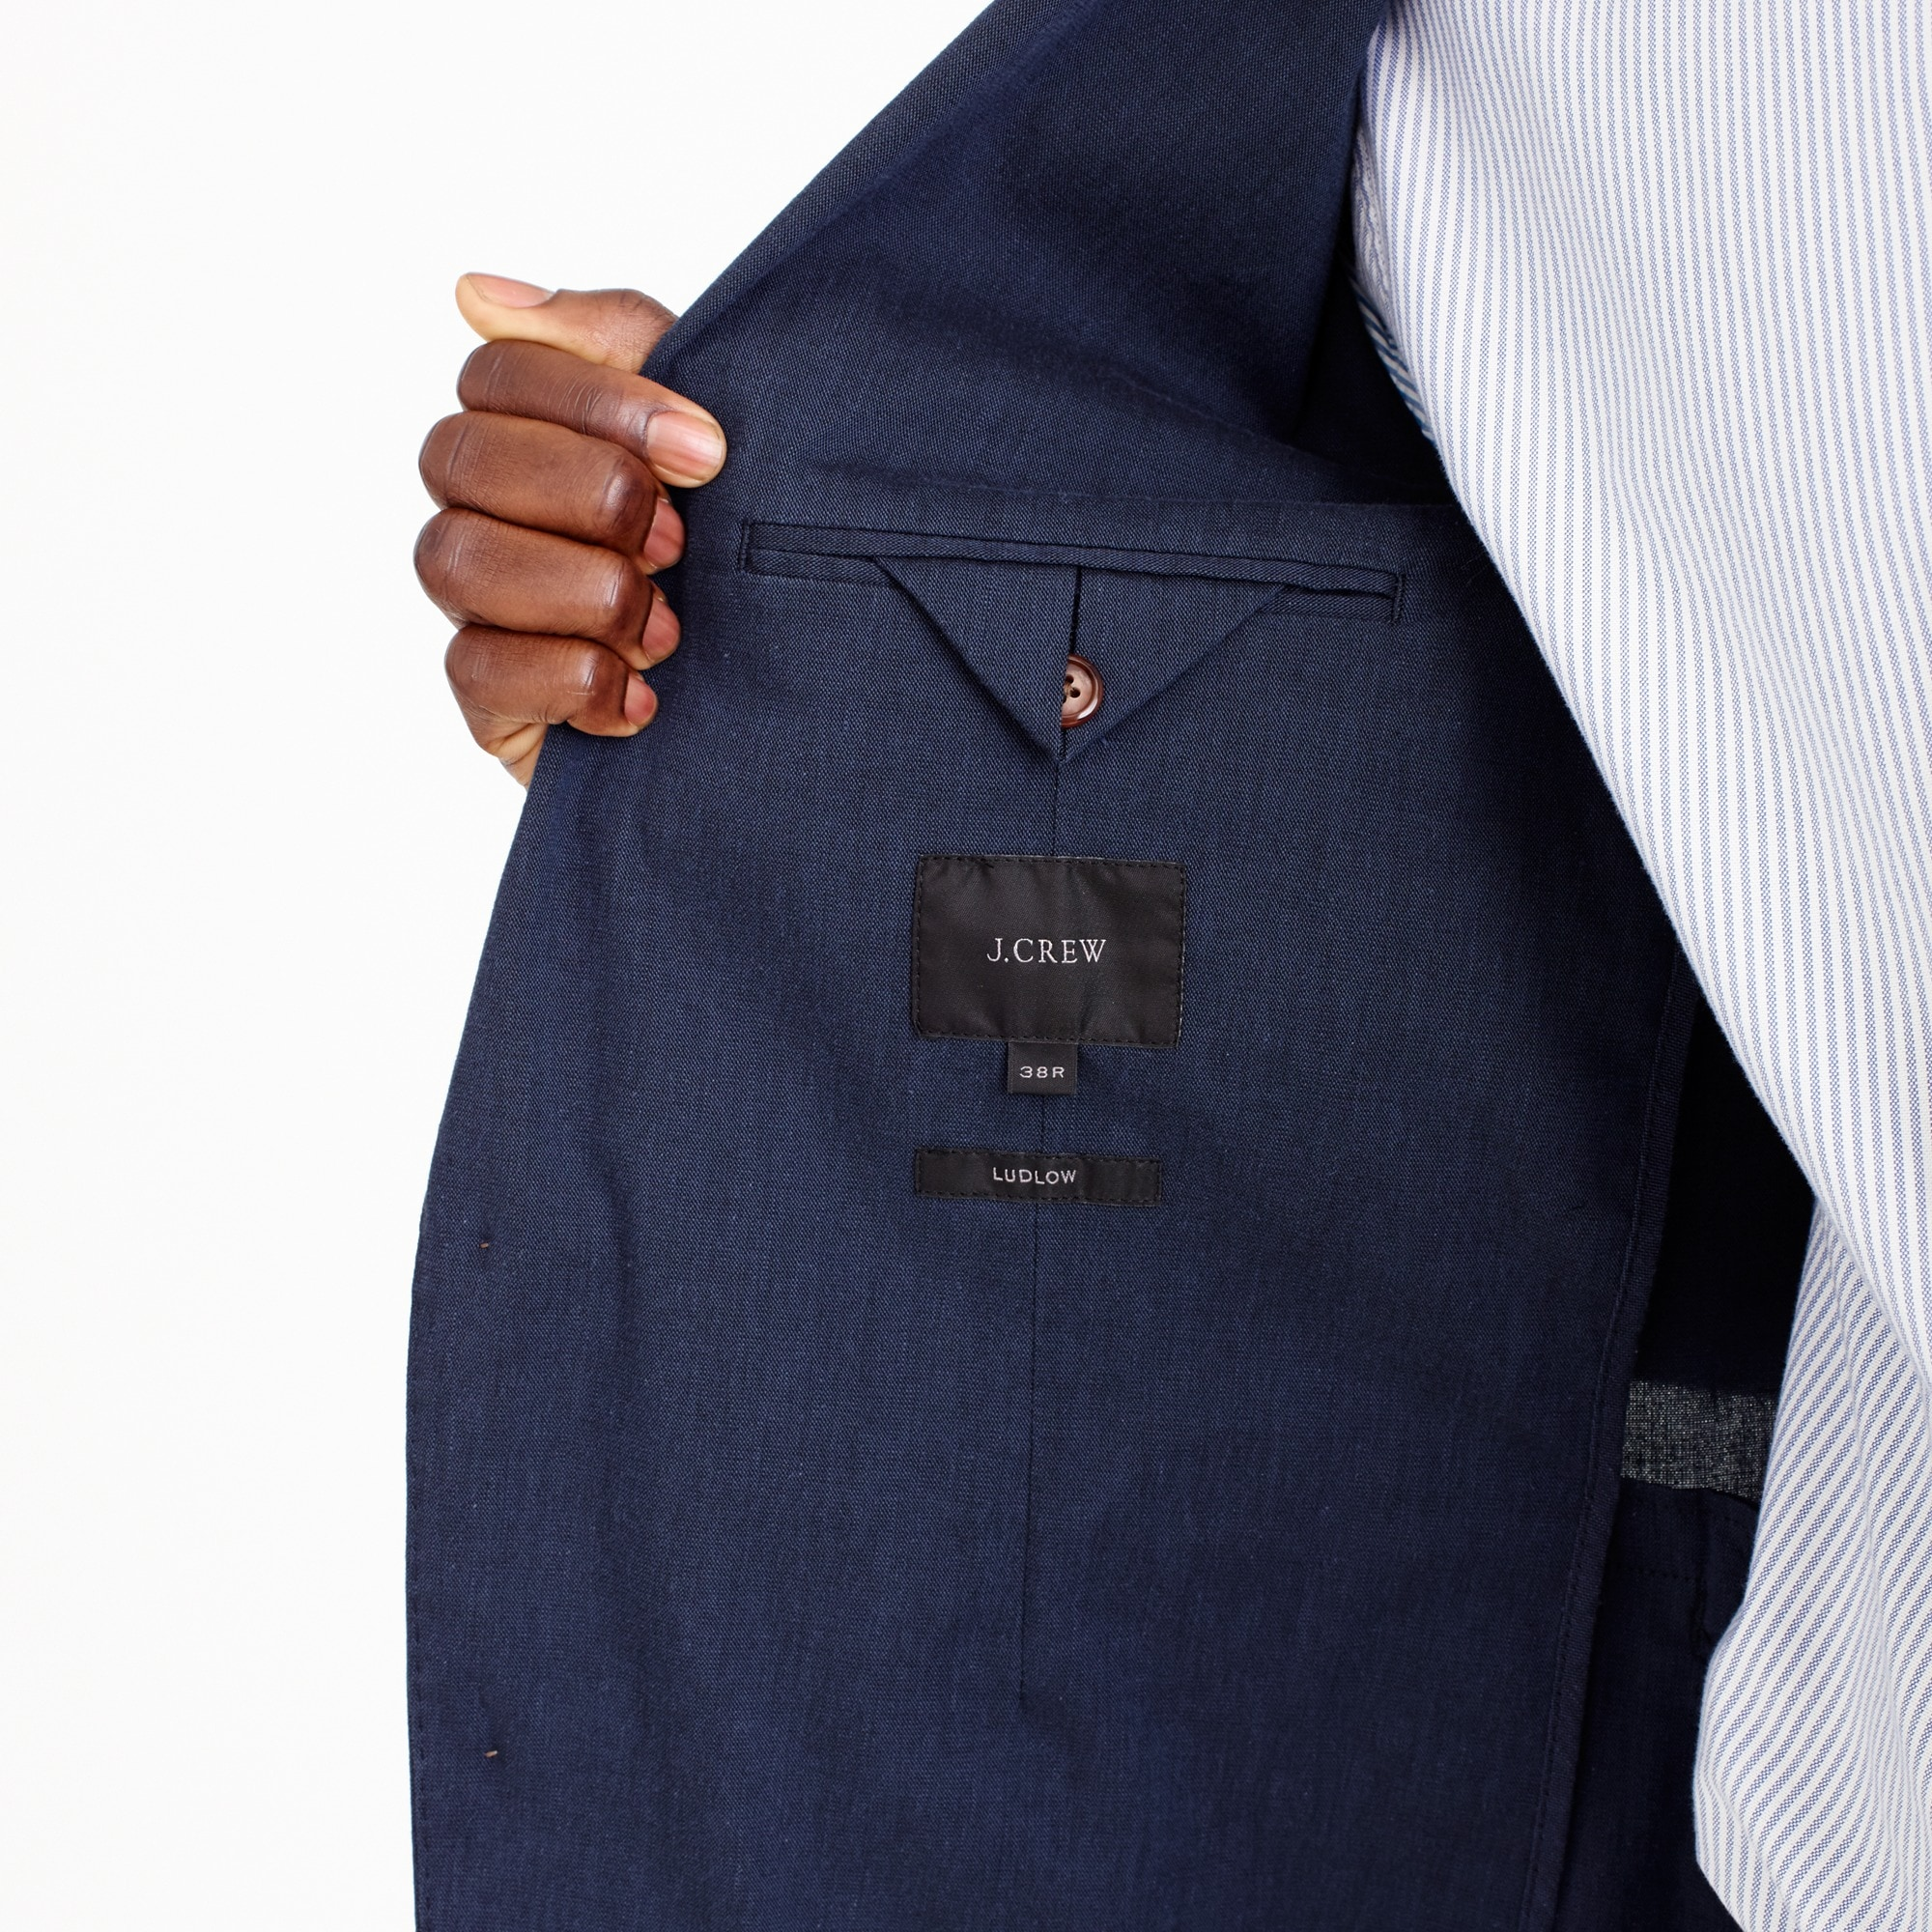 Image 6 for Ludlow Slim-fit unstructured suit jacket in stretch cotton